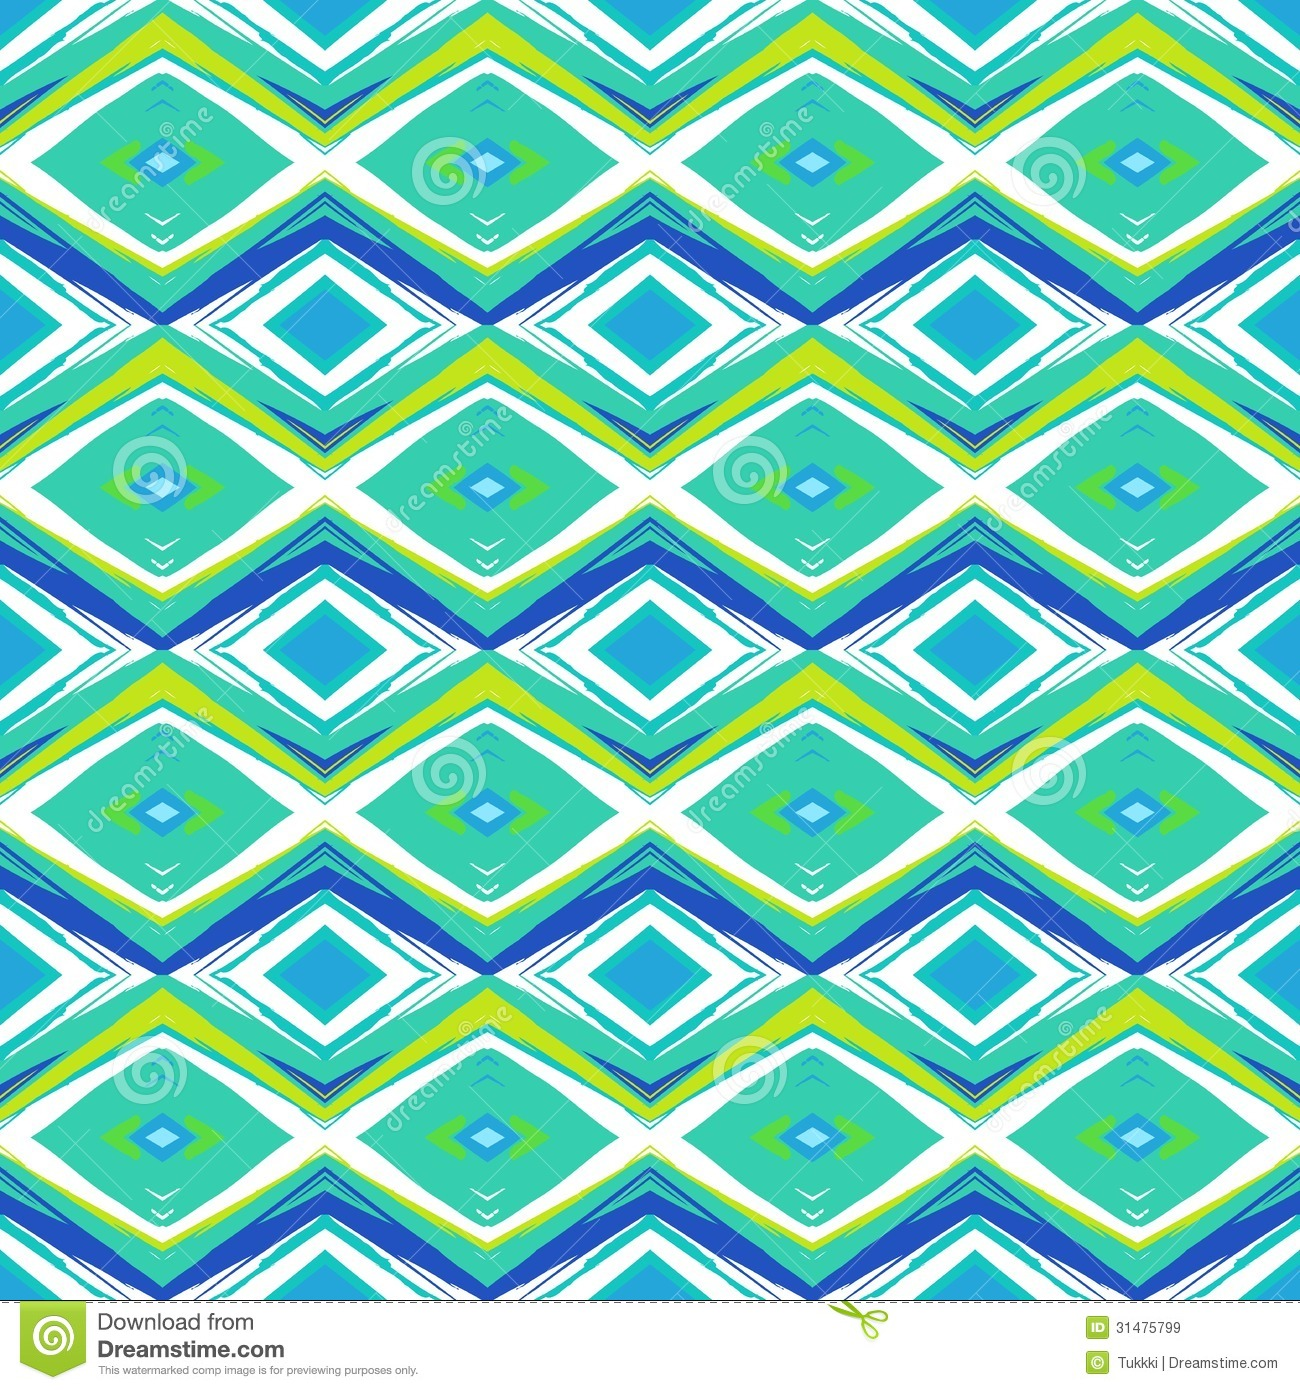 Blue and green pattern wallpaper - photo#38